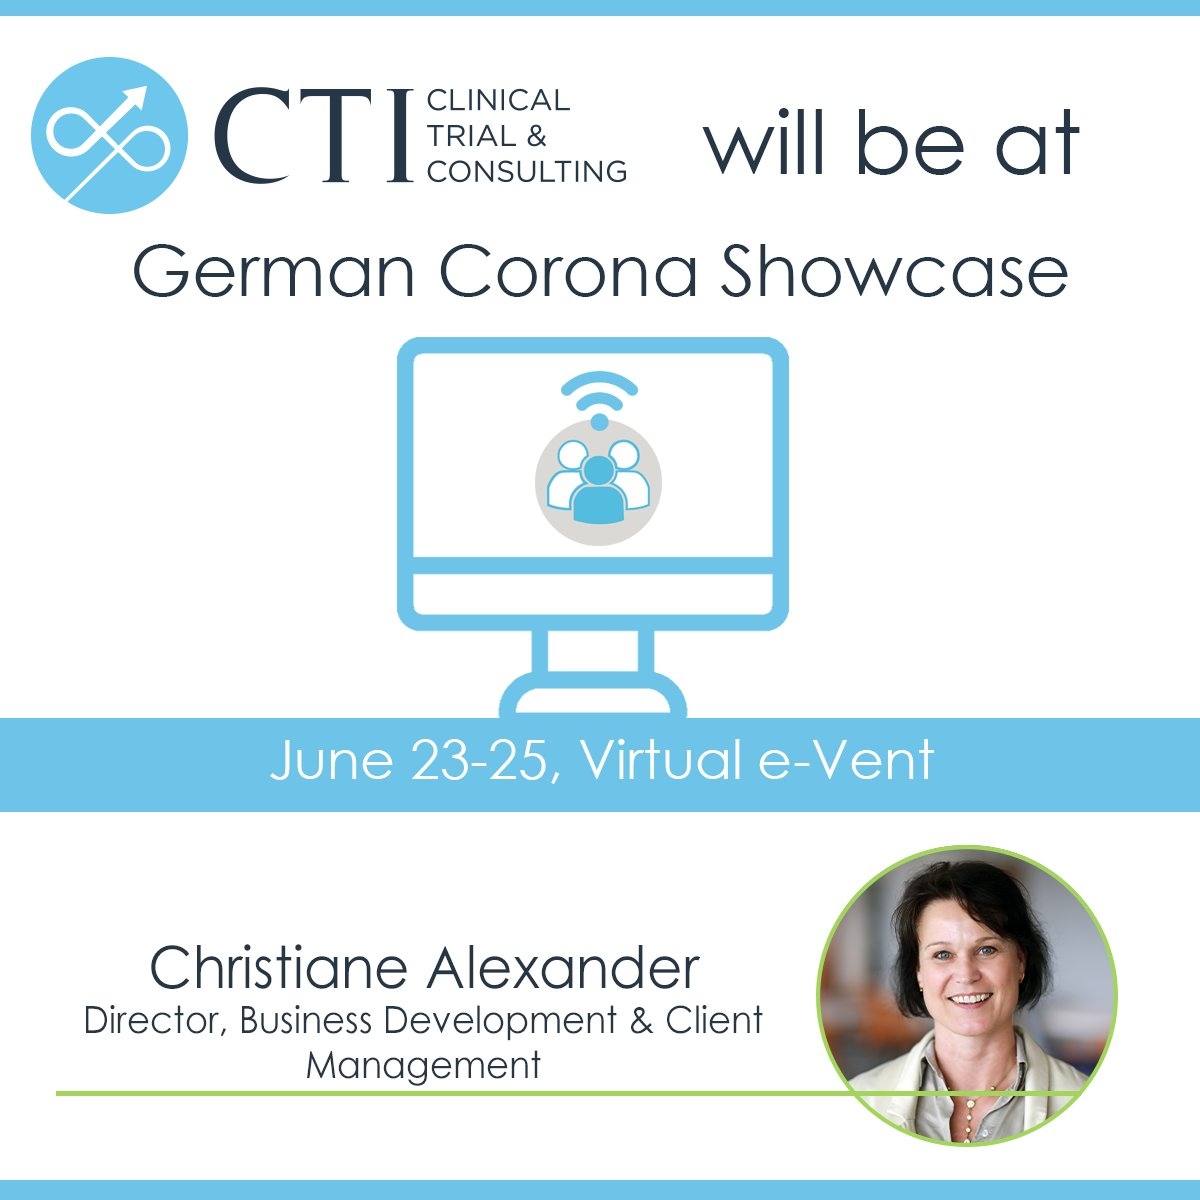 CTI will be a part of the virtual German Corona Showcase meeting this week! If you would like to set up a time to talk with our team about the #COVID19 pandemic and the work we are doing, send us a dm. @BIODeutschland https://t.co/mxjzvCDw8d